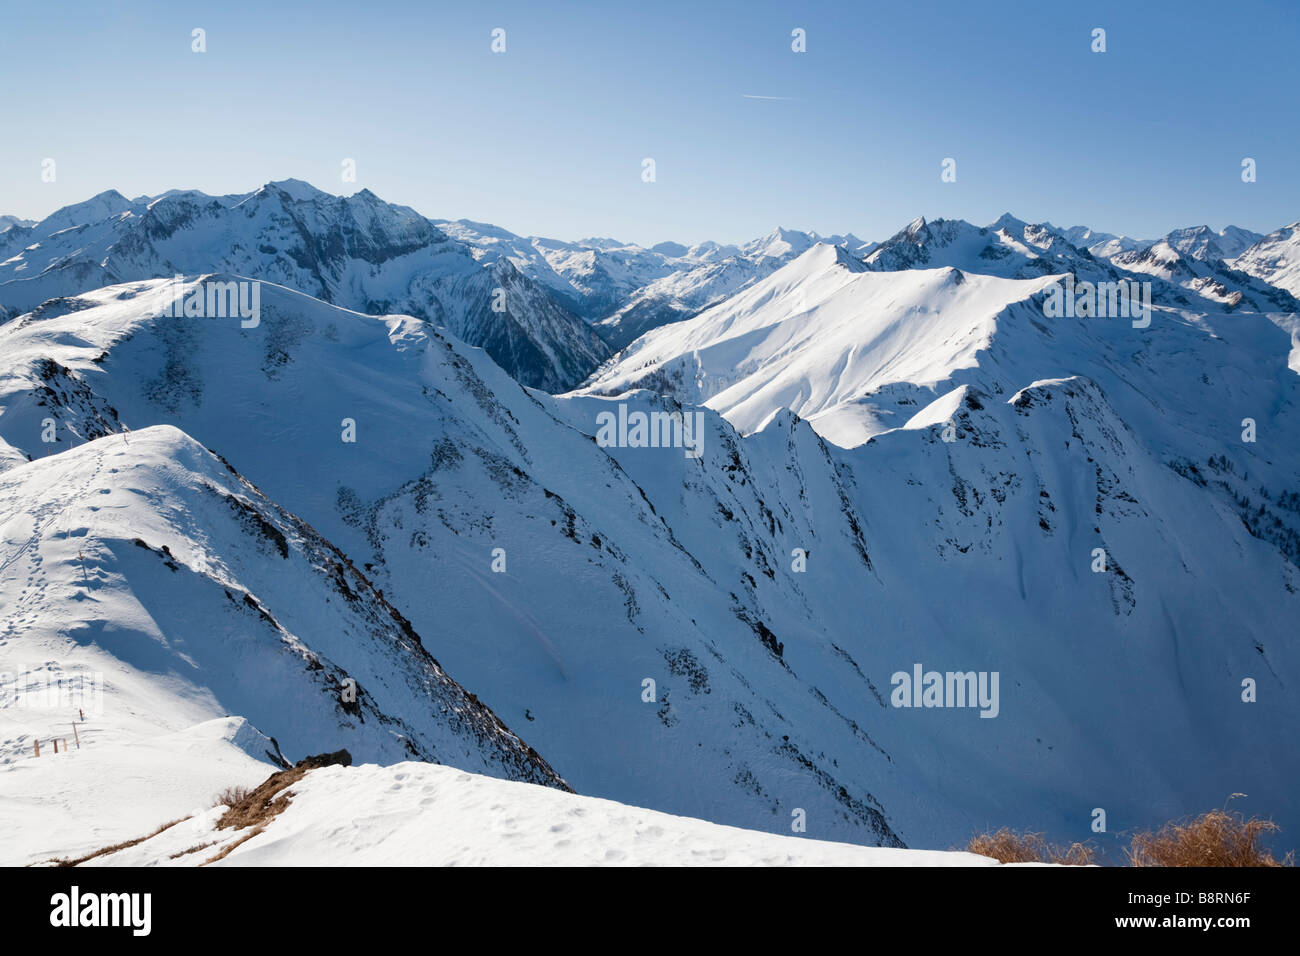 Austrian Alps in National Park Hohe Tauern with snow covered mountains from Schwarzwand mountain summit in winter. Stock Photo